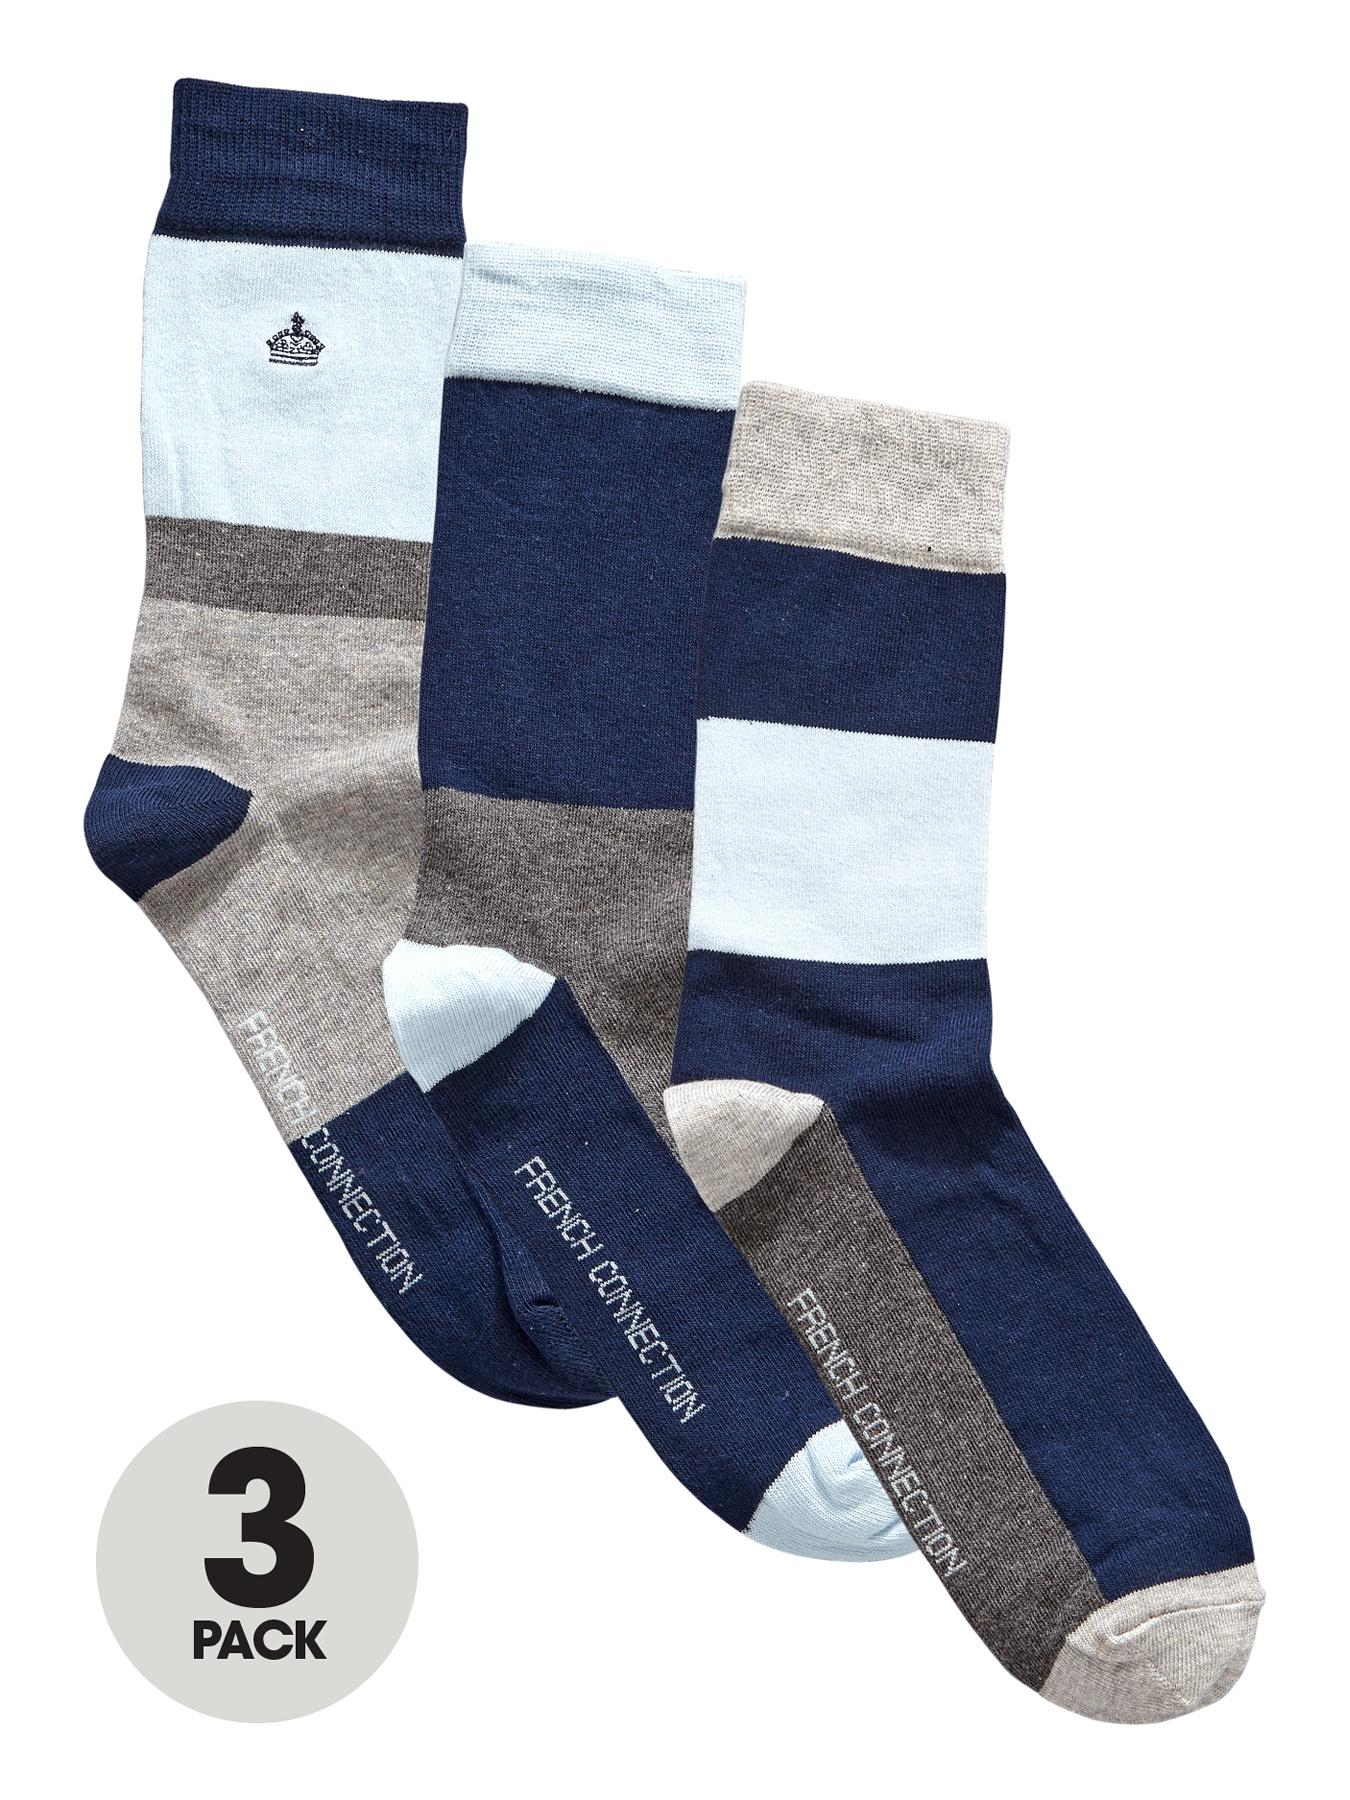 French Connection Mens Block Socks (3 Pack) - Grey, Grey